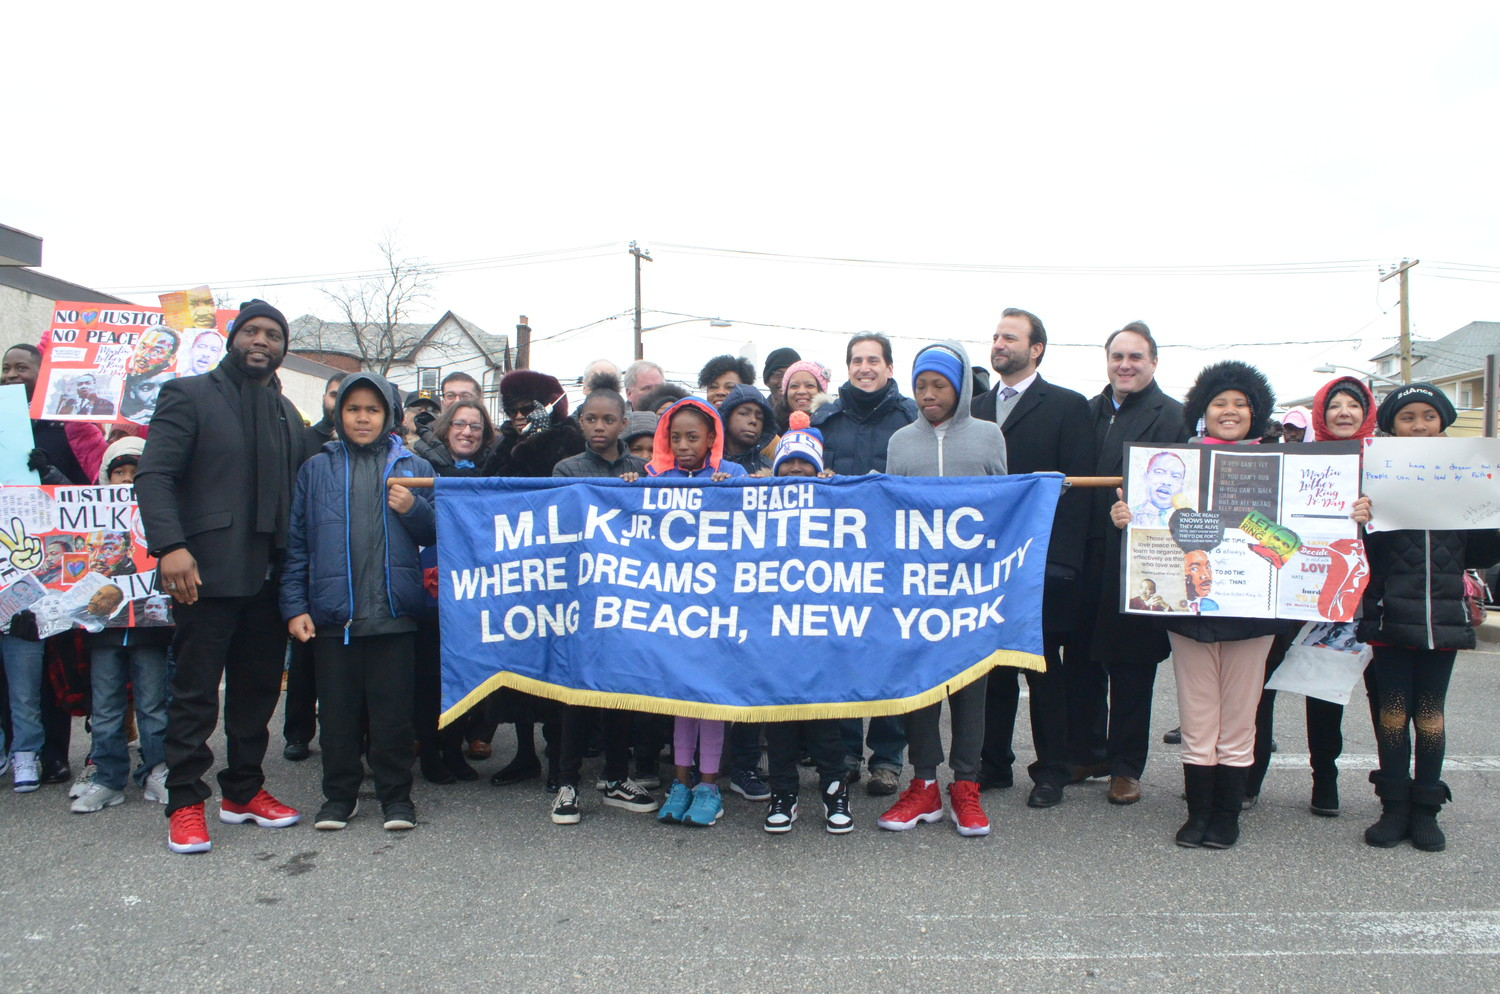 Hundreds of people marched along W. Park Avenue Monday morning to commemorate the life of Dr. Martin Luther King Jr.